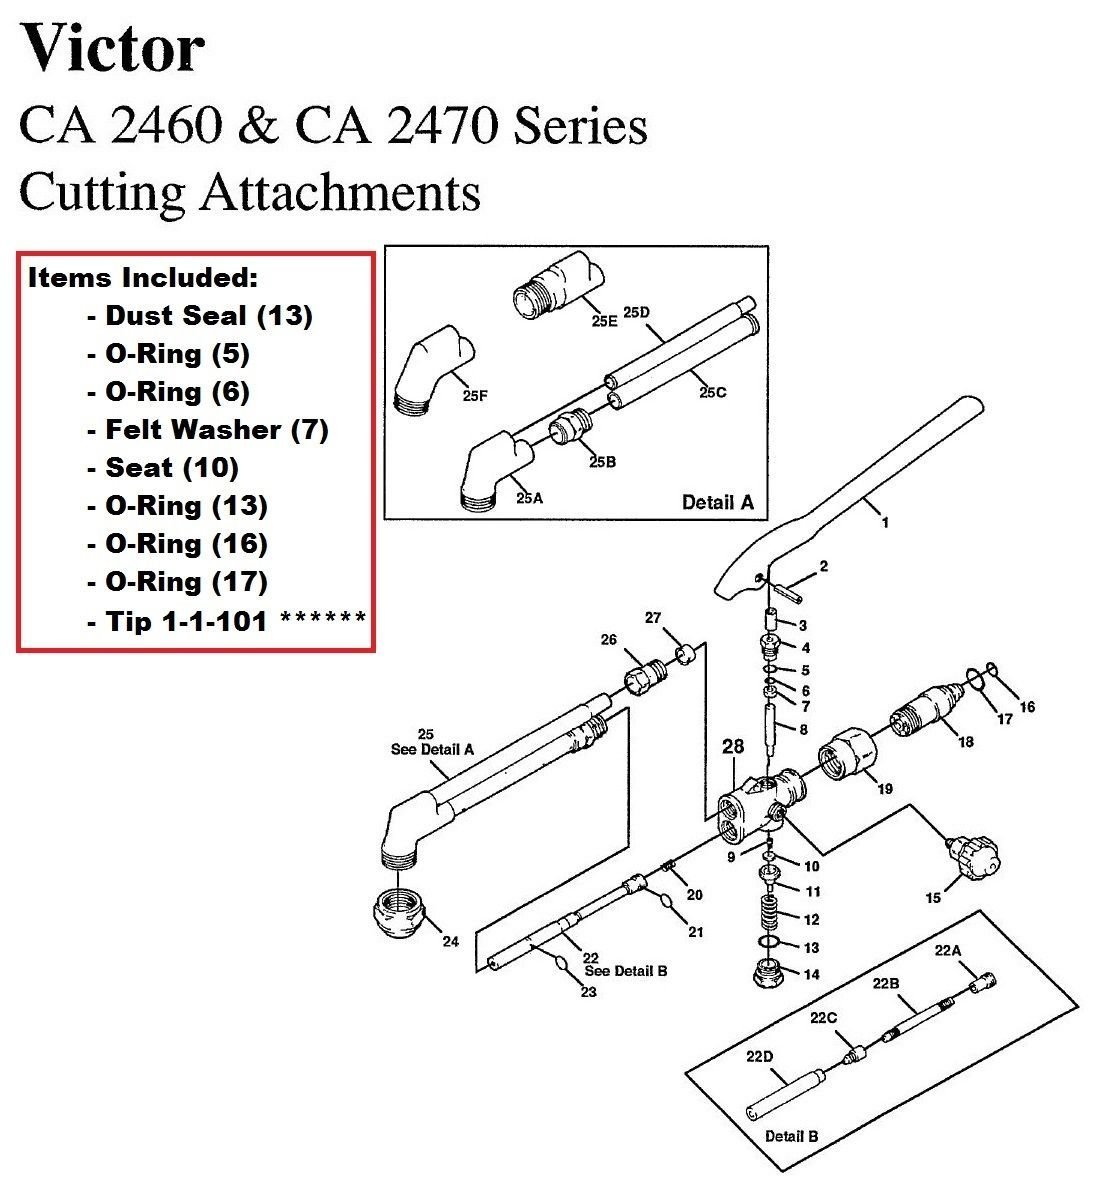 Amazon.com: Victor CA2460 & CA2470 Cutting Torch Rebuild/Repair Parts Kit,  with 1-1-101 Tip: Home Improvement